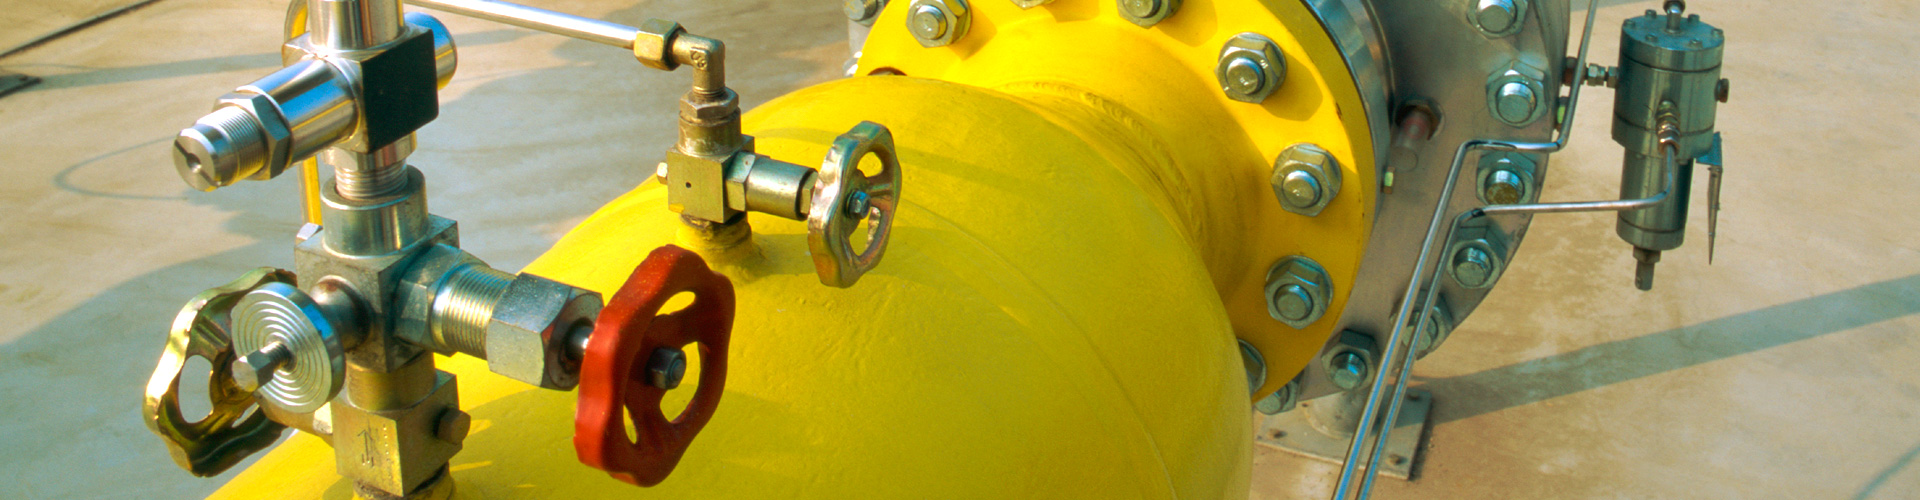 industrial valves and pumps